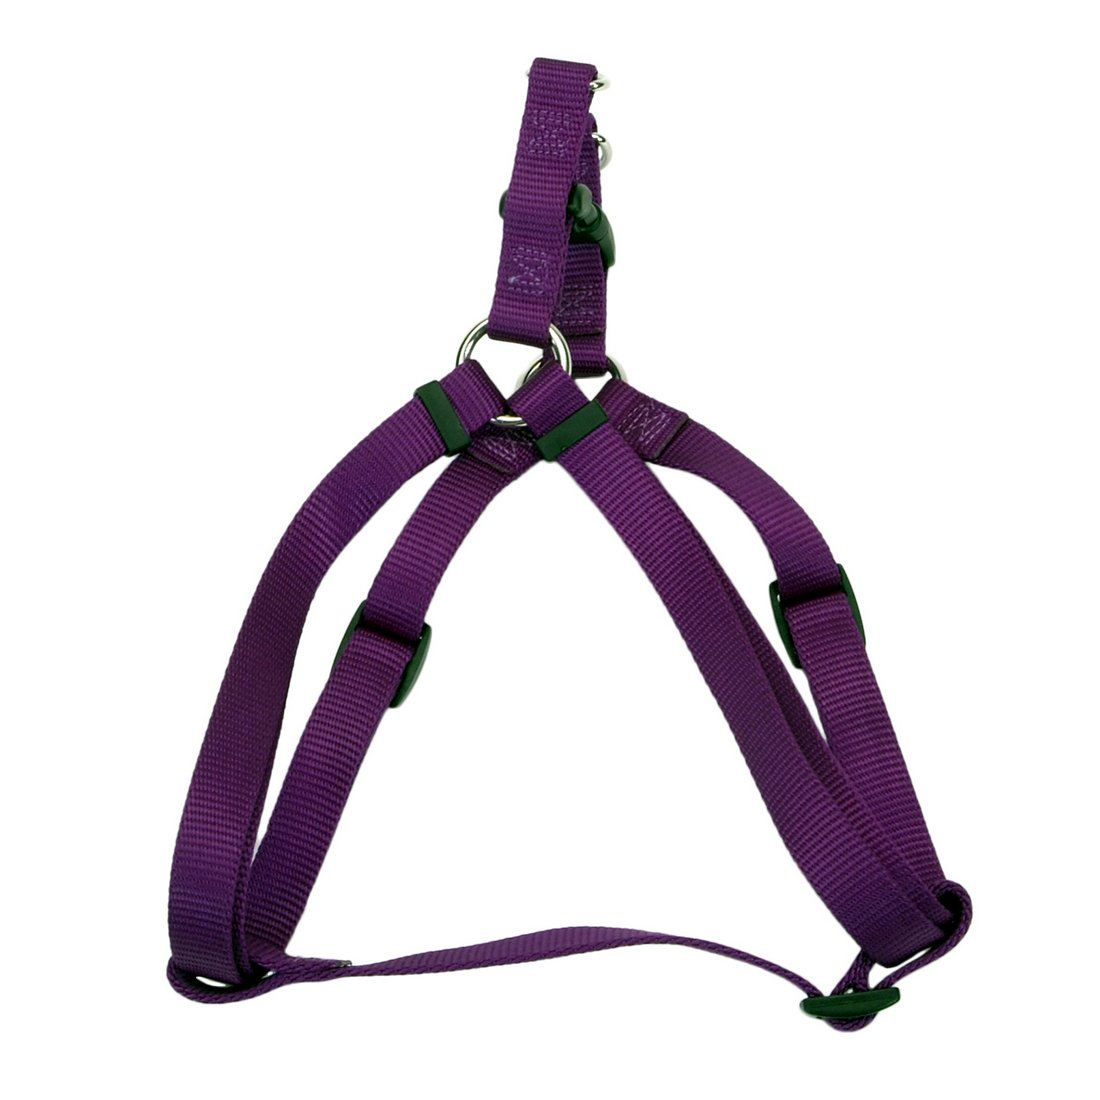 coastal-comfort-harness-5-8-purple